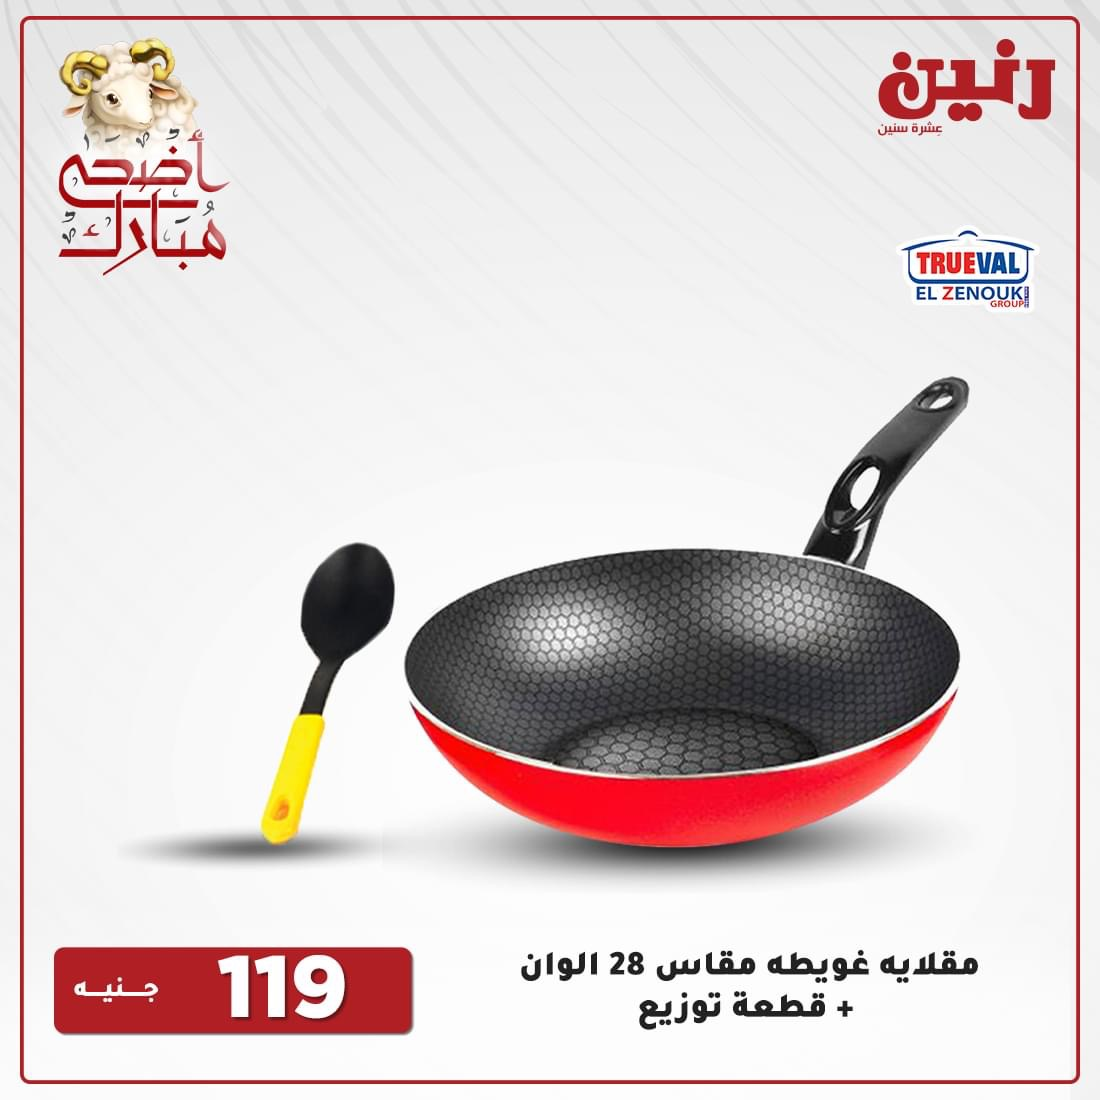 Raneen offers today for appliances and household appliances from July 22 to 24, 2021 22